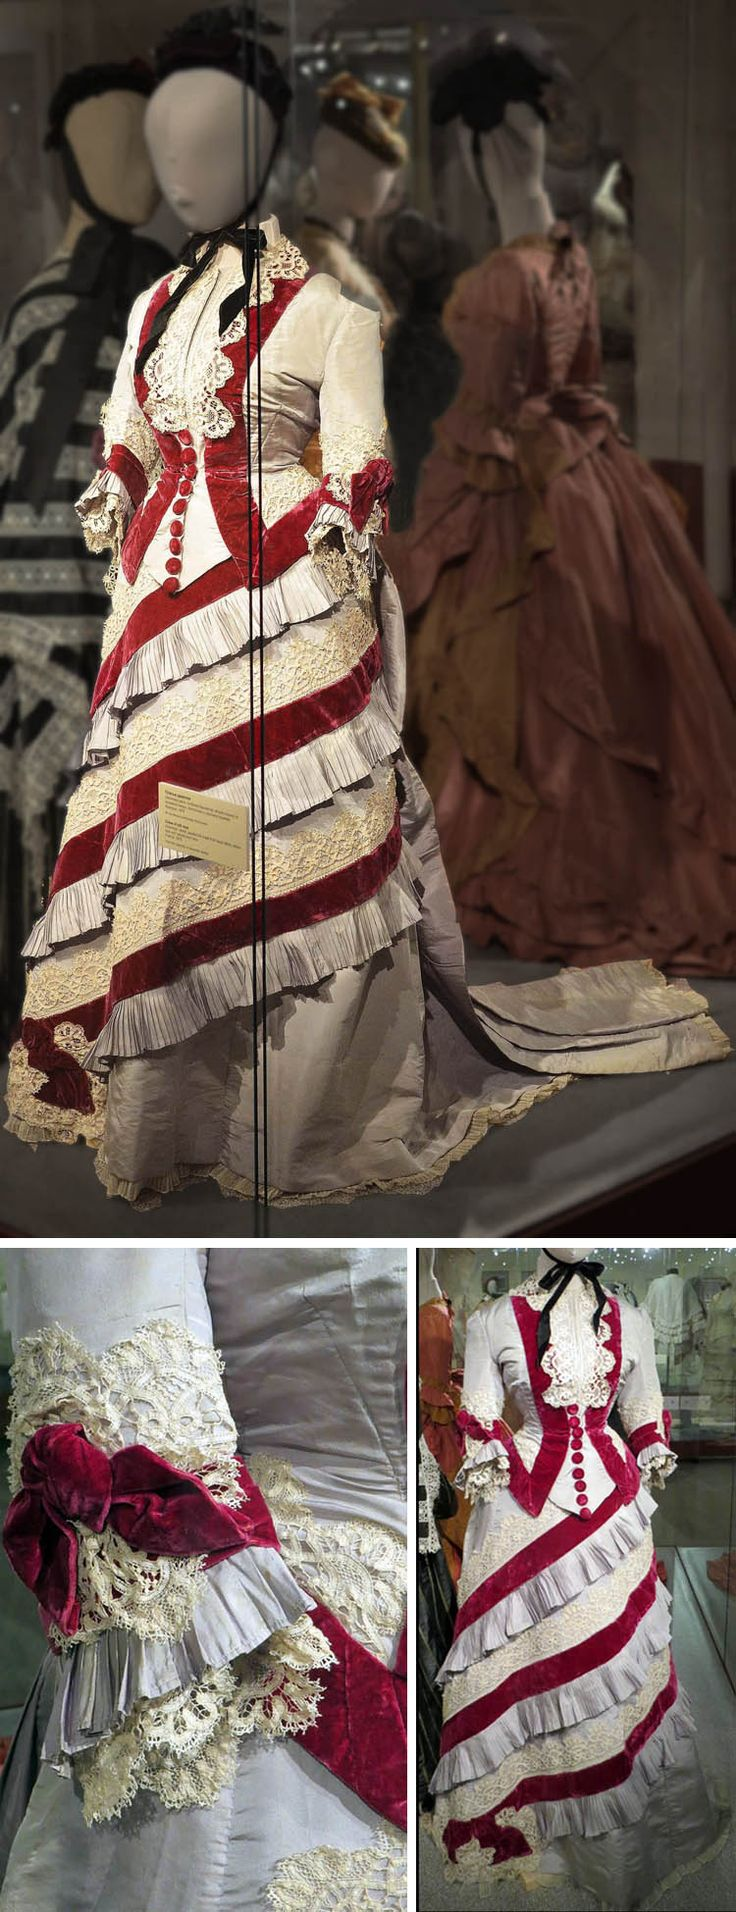 Day dress, French, ca. 1875. Silk rep. From Alexandre Vassiliev's collection. Photo credits: top, Sherila, LiveInternet.ru; lower left, unknown; lower right, Lena GM.